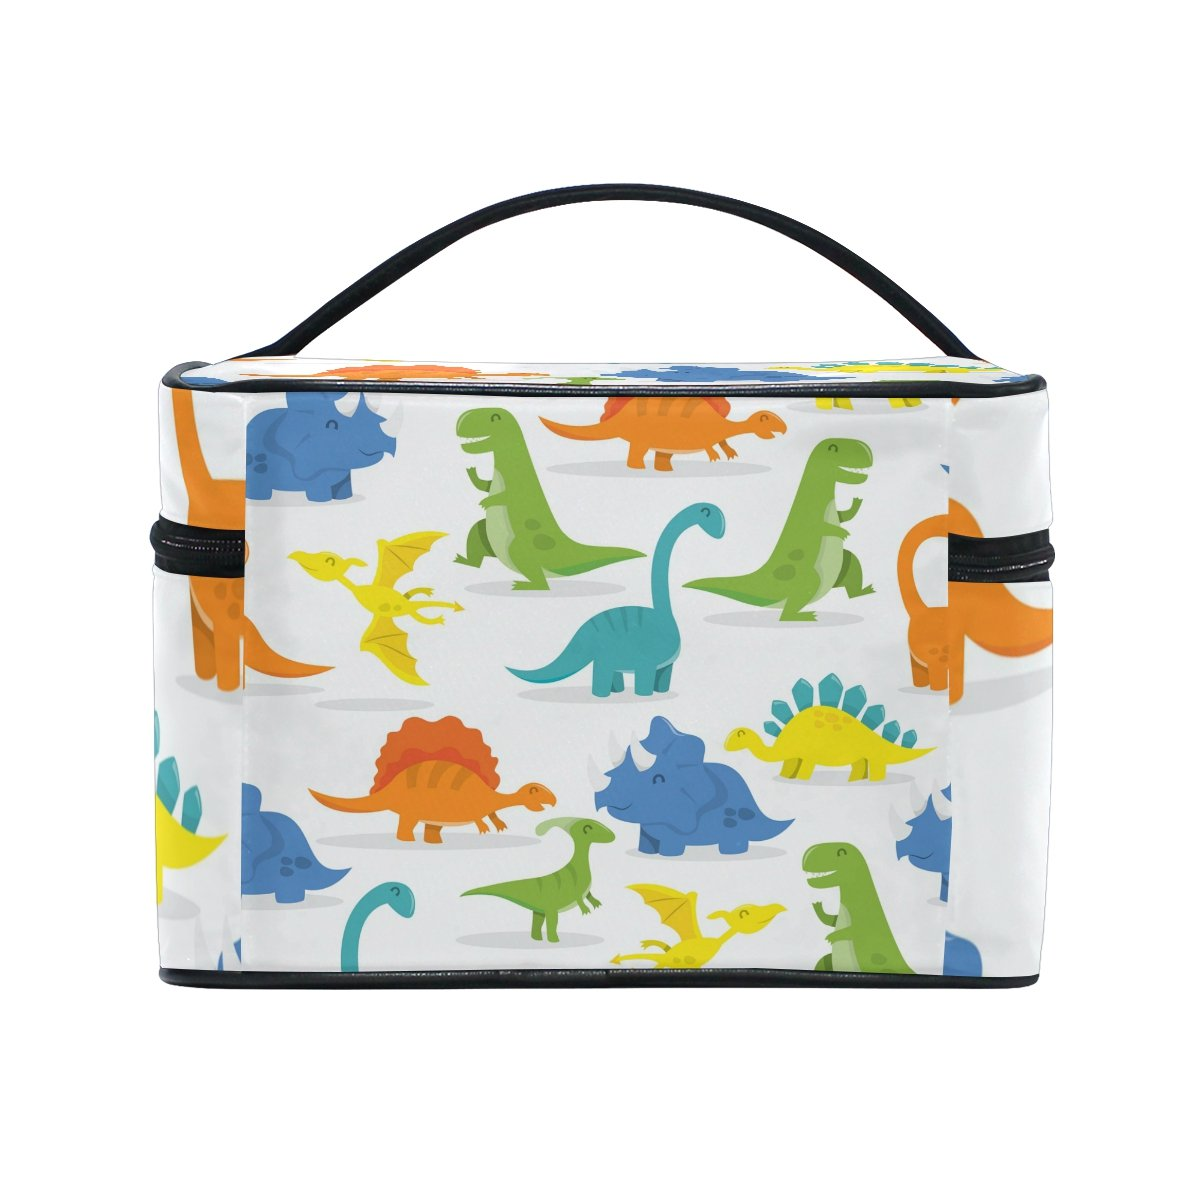 Amazon.com : ALIREA Cartoon Dinosaur Cosmetic Bag Travel Makeup Train Cases Storage Organizer : Beauty